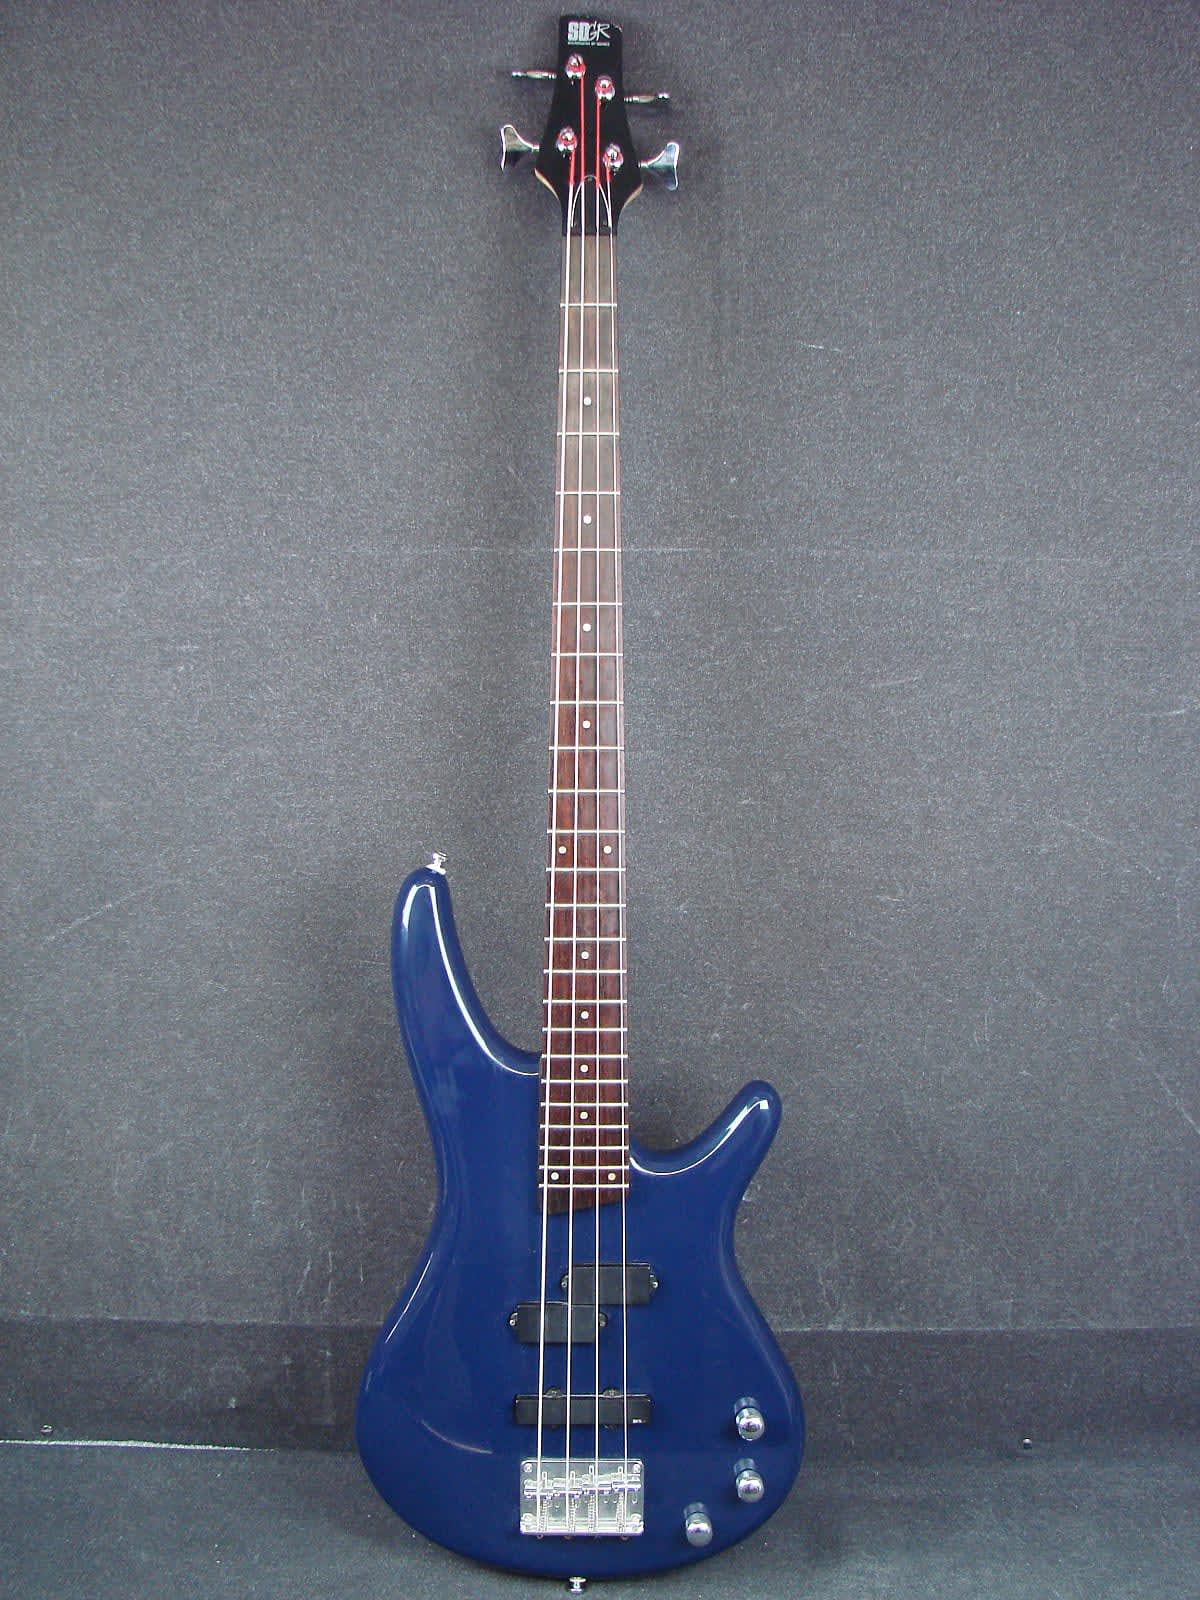 Ibanez Soundgear SR300 Four-String Made in Korea Electric | Reverb